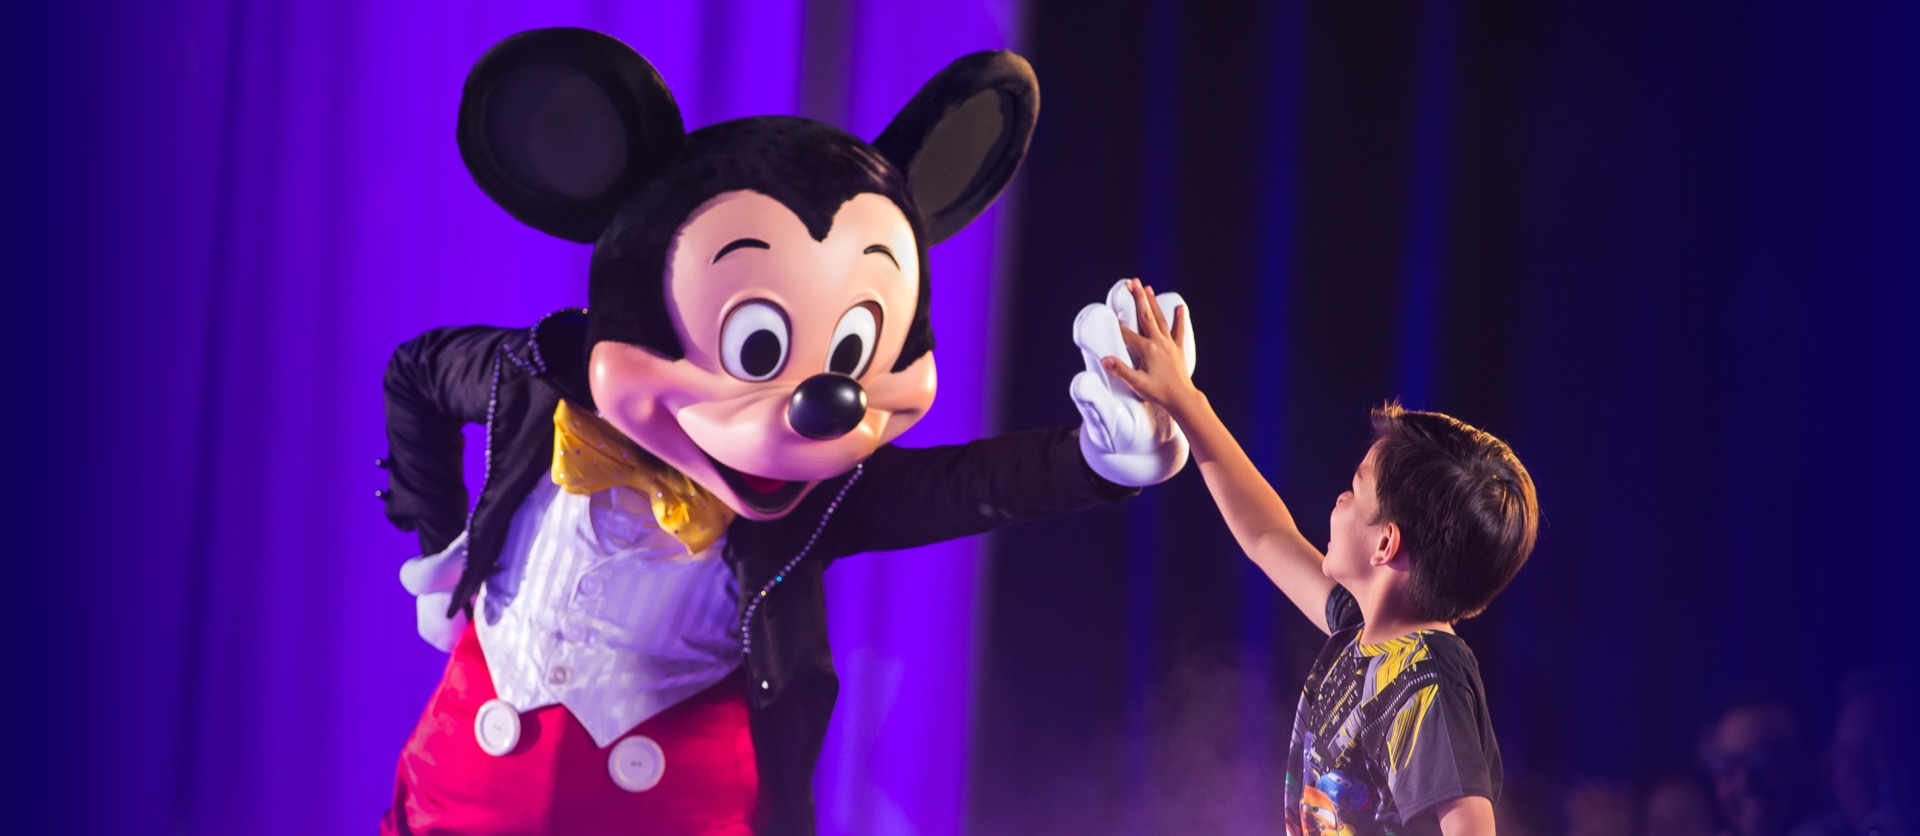 Mickey Mouse high five young boy during live show